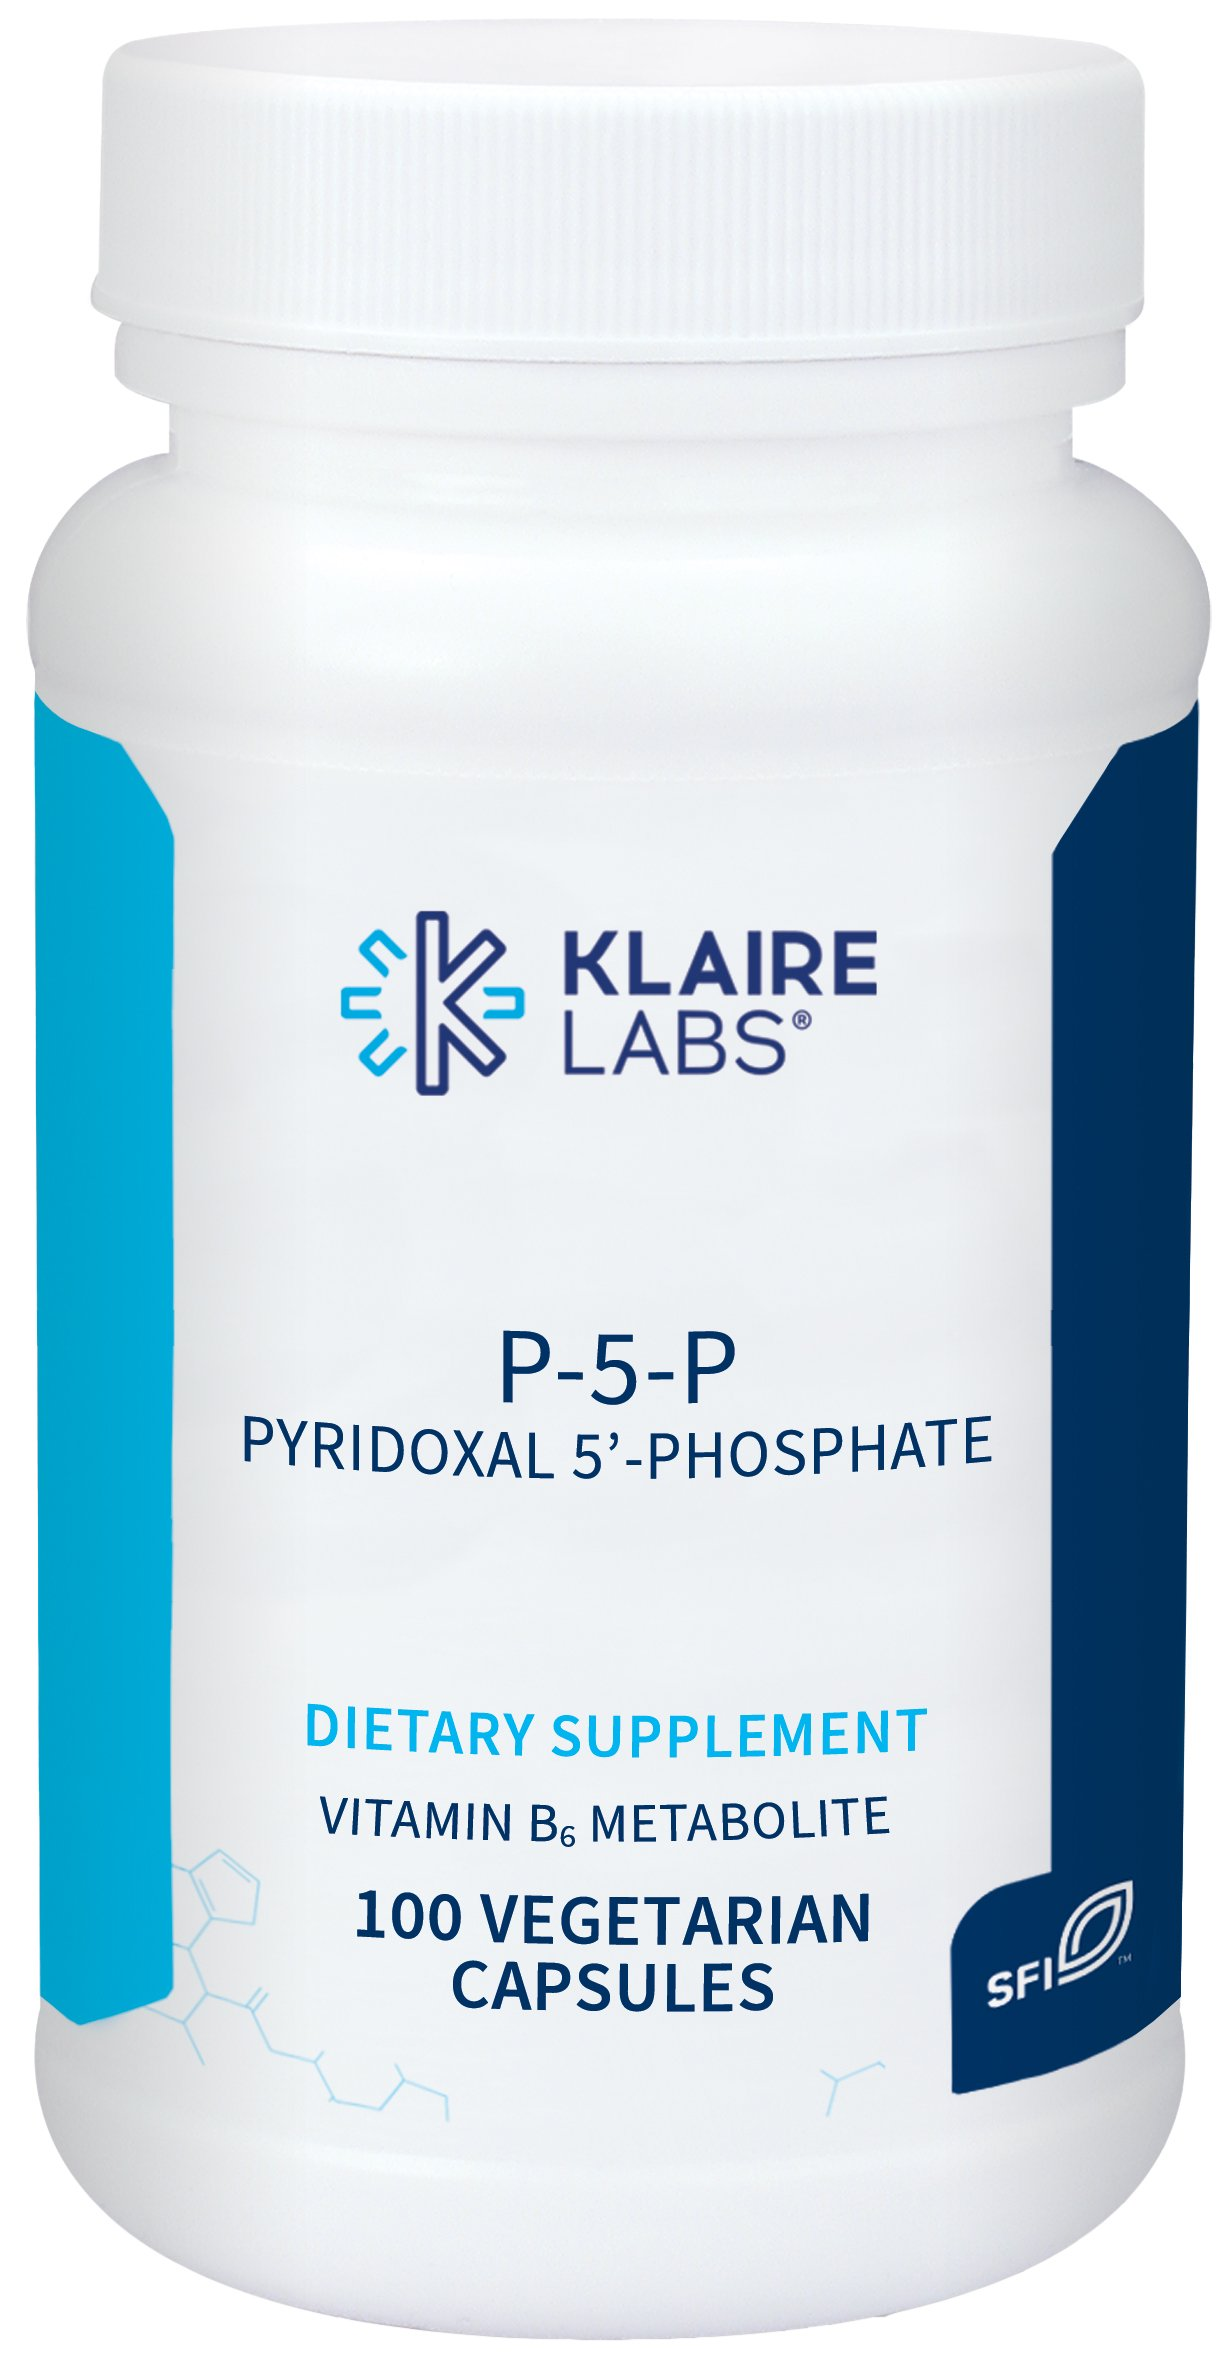 Klaire Labs P-5-P - 30 Milligrams of Bioactive Vitamin B6 Pyridoxal-5-Phosphate for Metabolic & Liver Support, Hypoallergenic (100 Capsules) by Klaire Labs